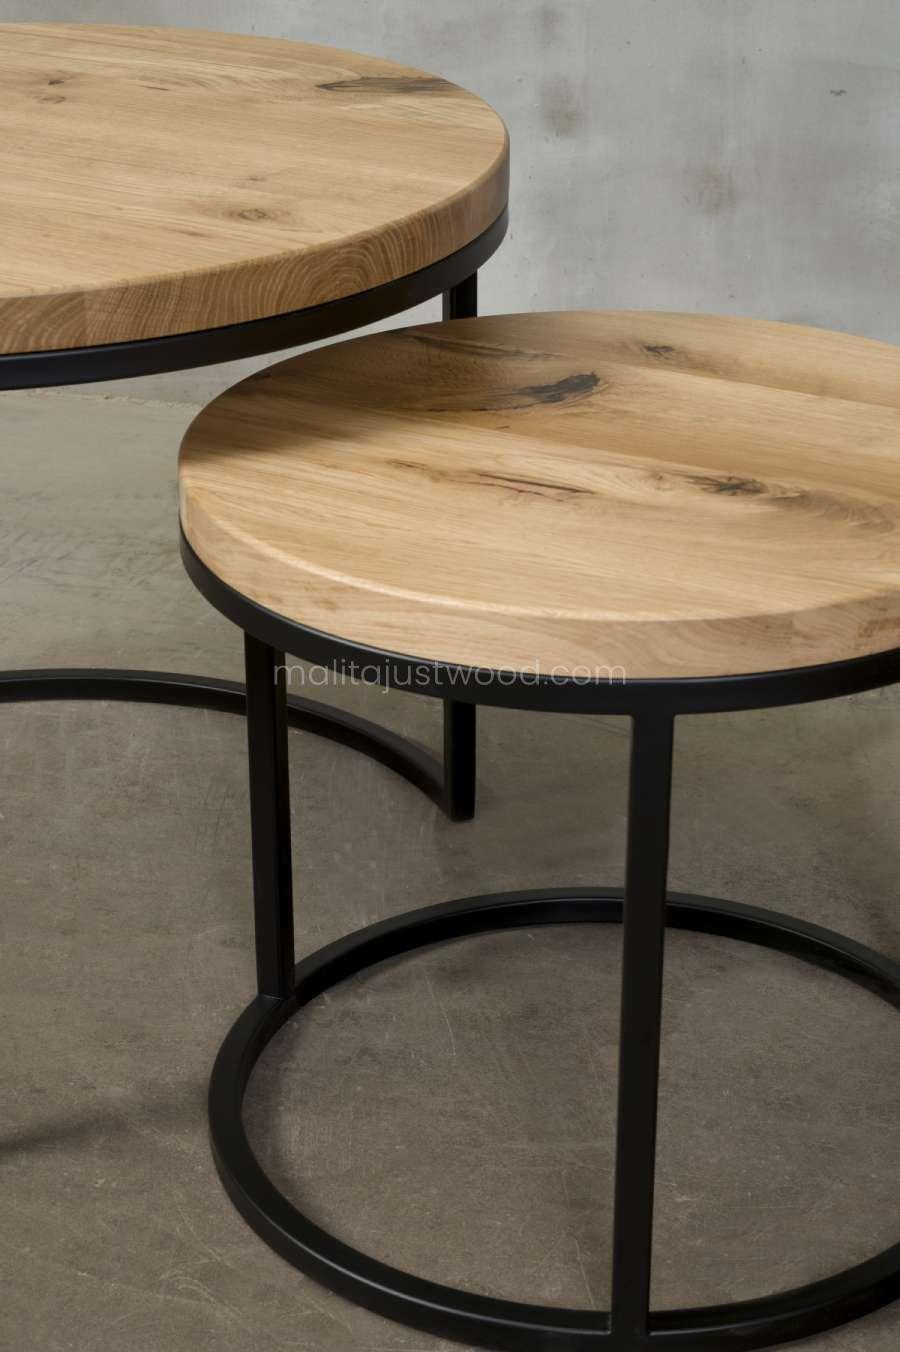 circum round coffee tables with an oak top